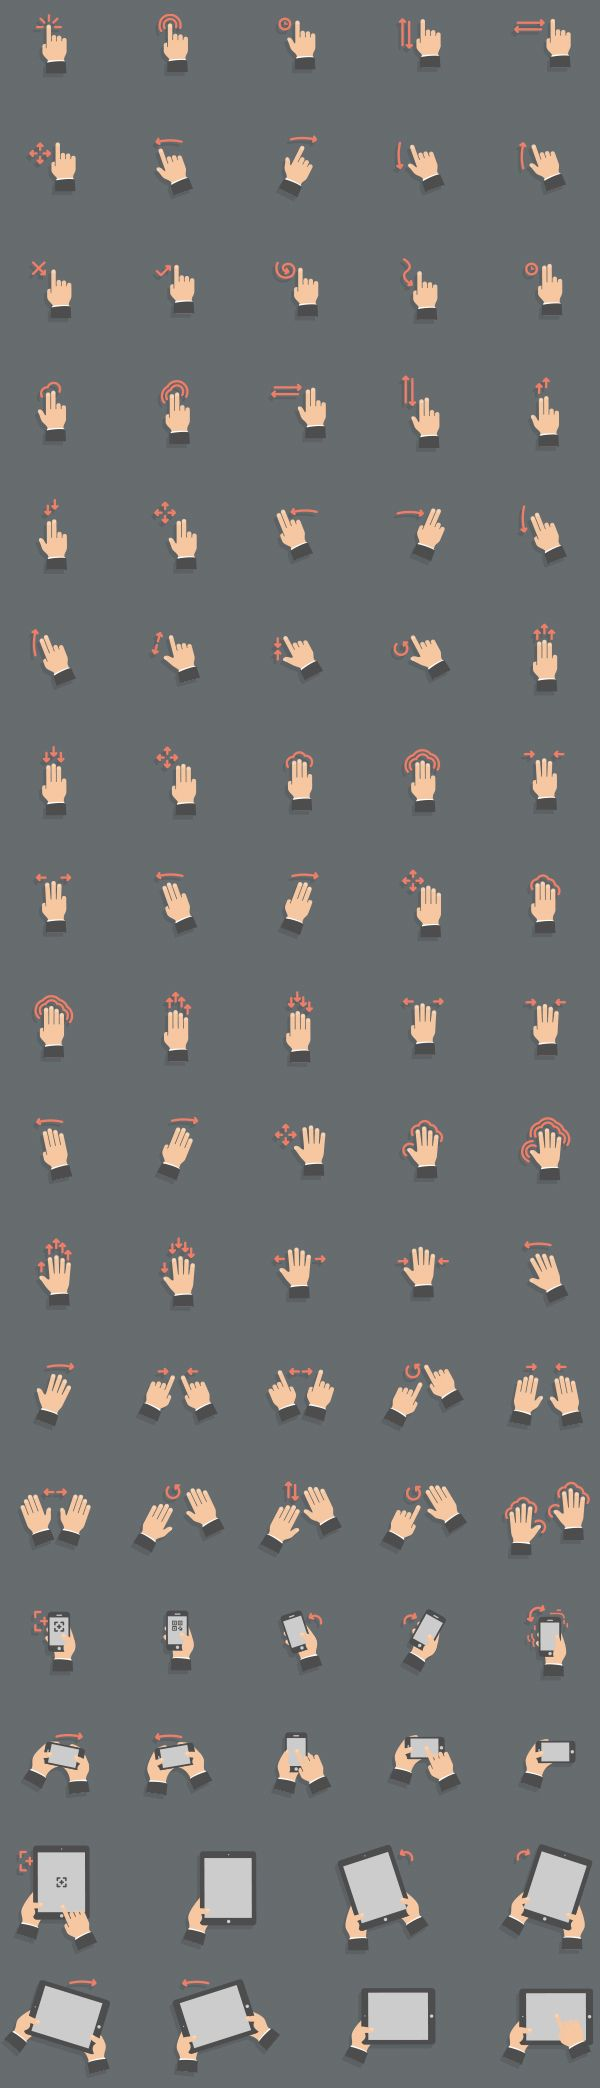 Flat Style Touch Screen Gestures Set by Mantas Bačiuška, via Behance